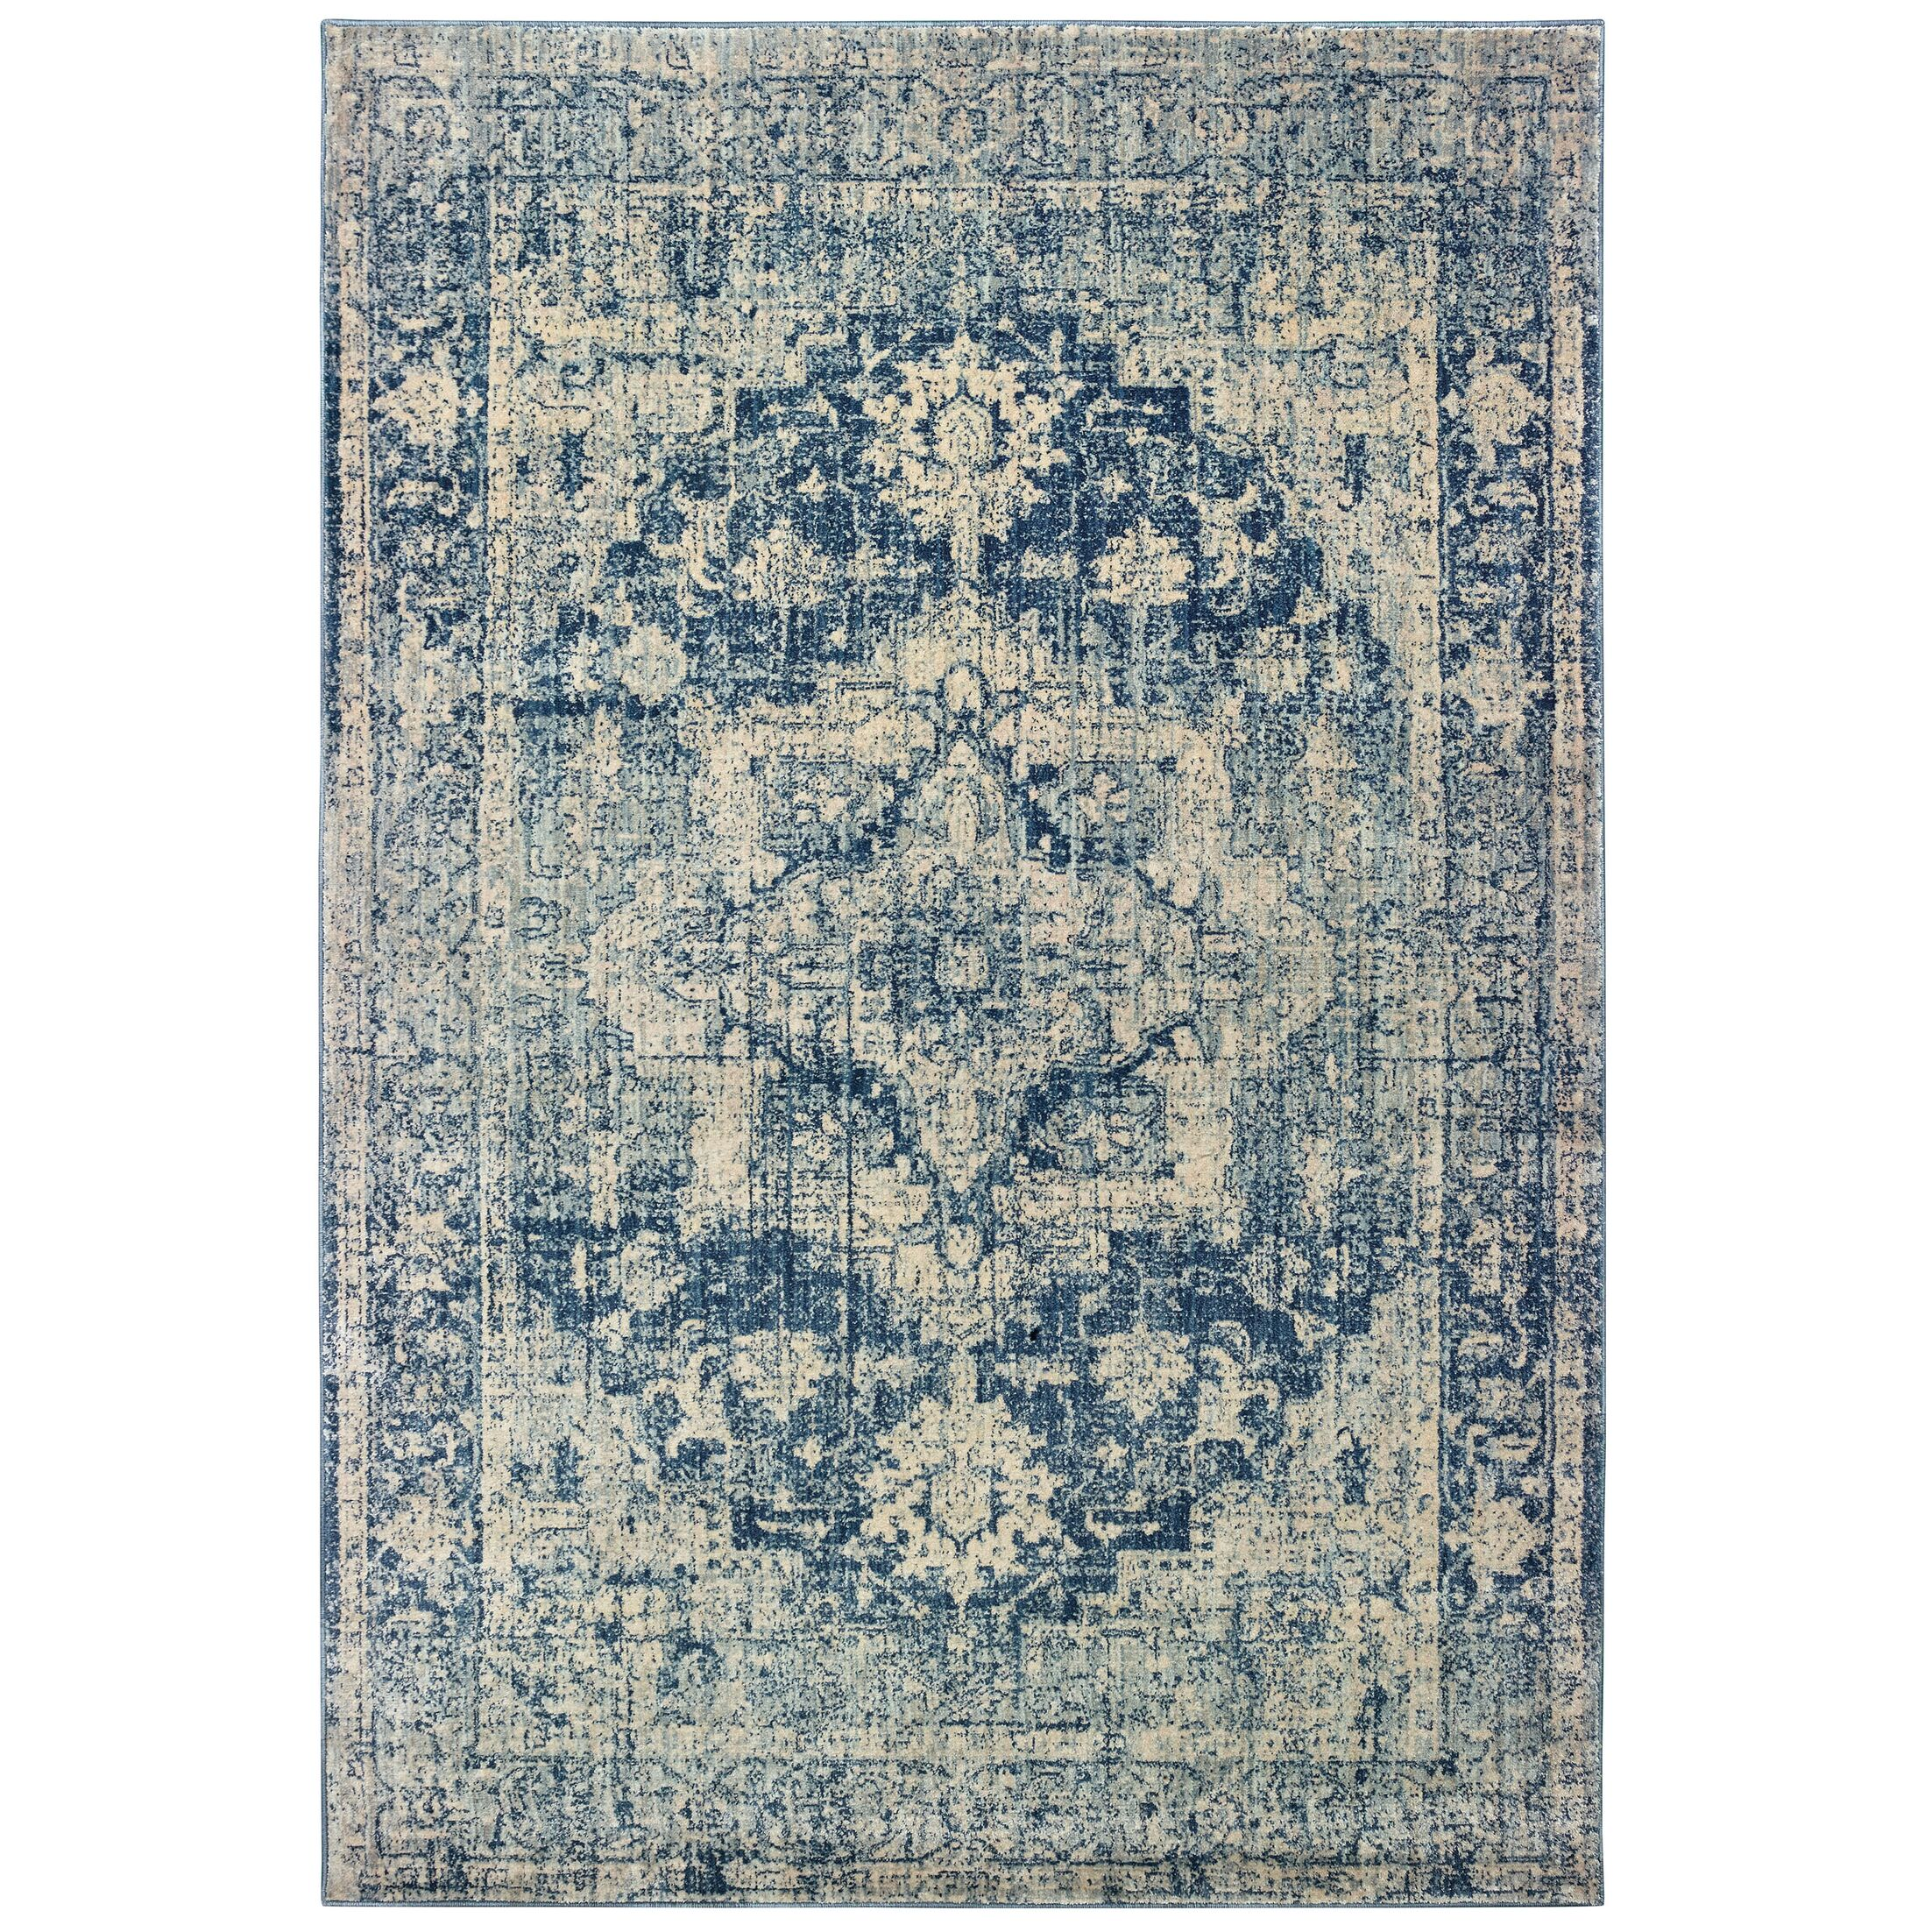 Pateros Distressed Medallion Ivory/ Blue Area Rug Rug Size: Rectangle 7'10